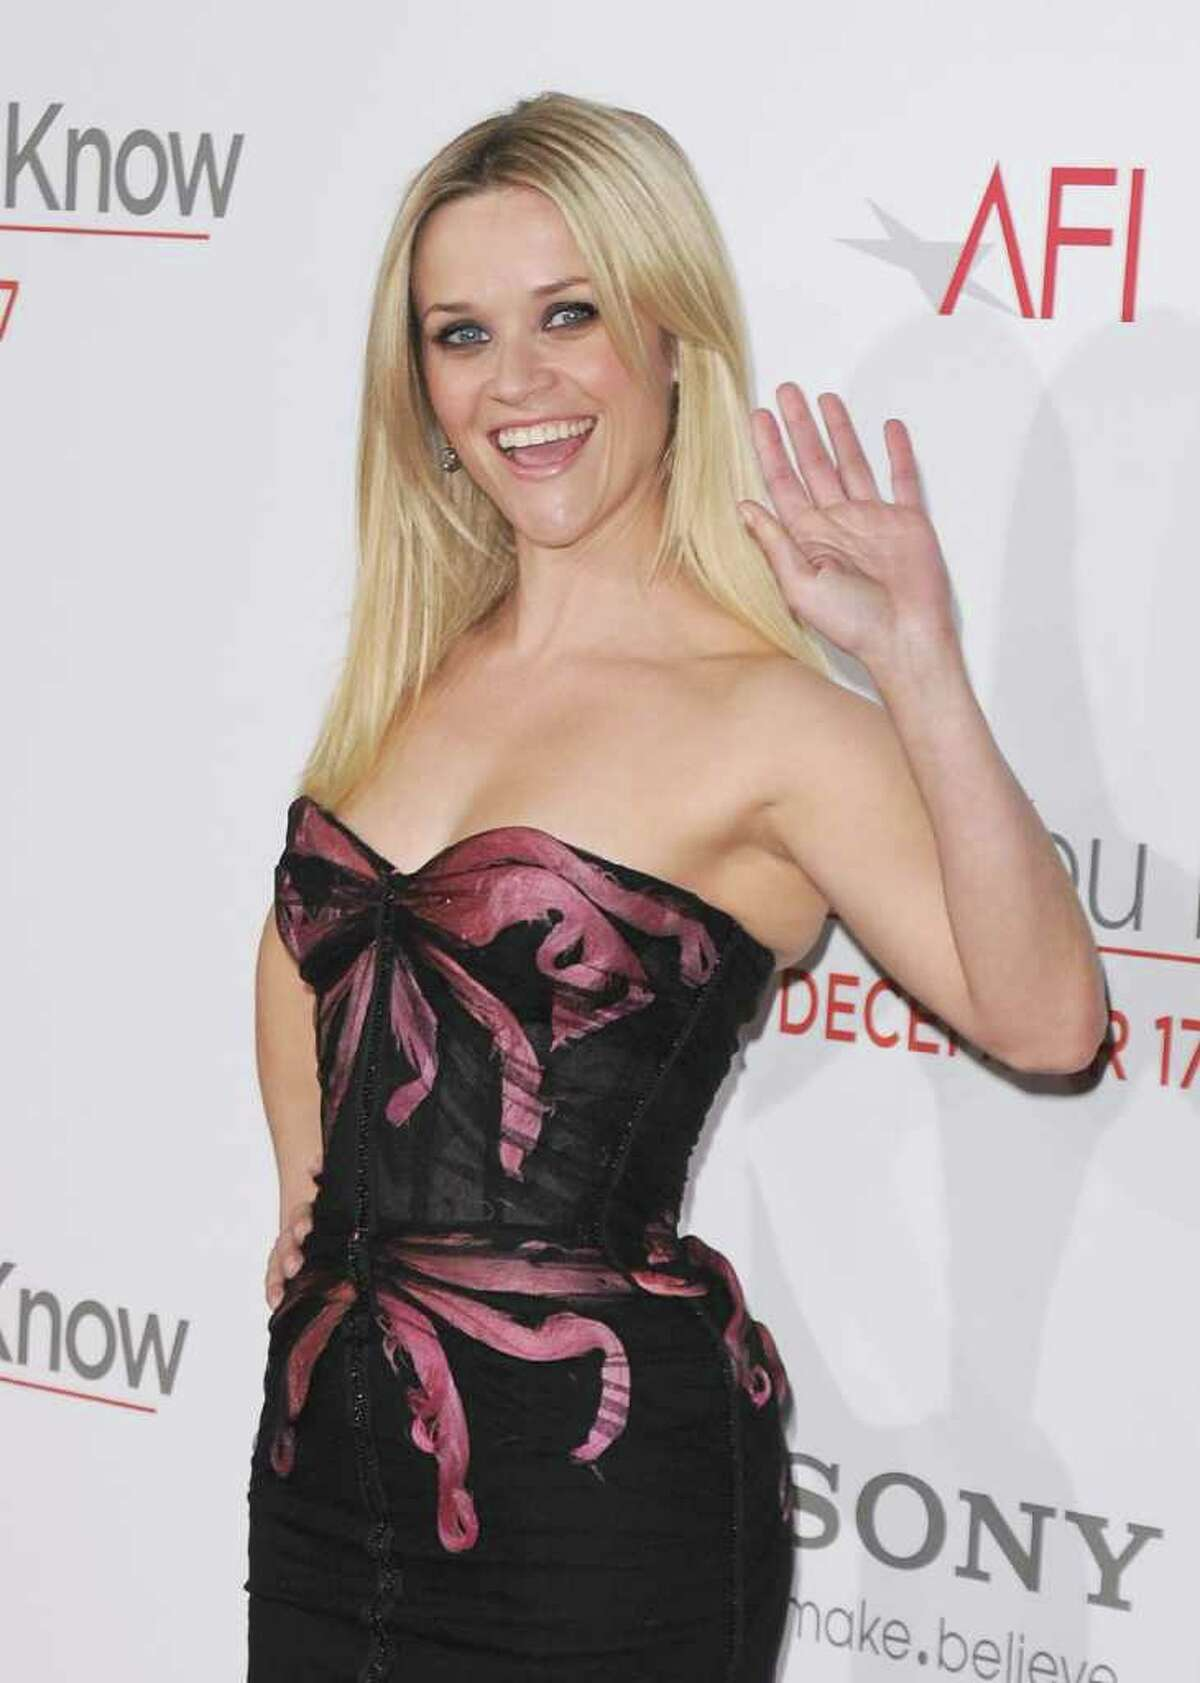 People Magazines Most Beautiful People of 2011: Actress Reese Witherspoon